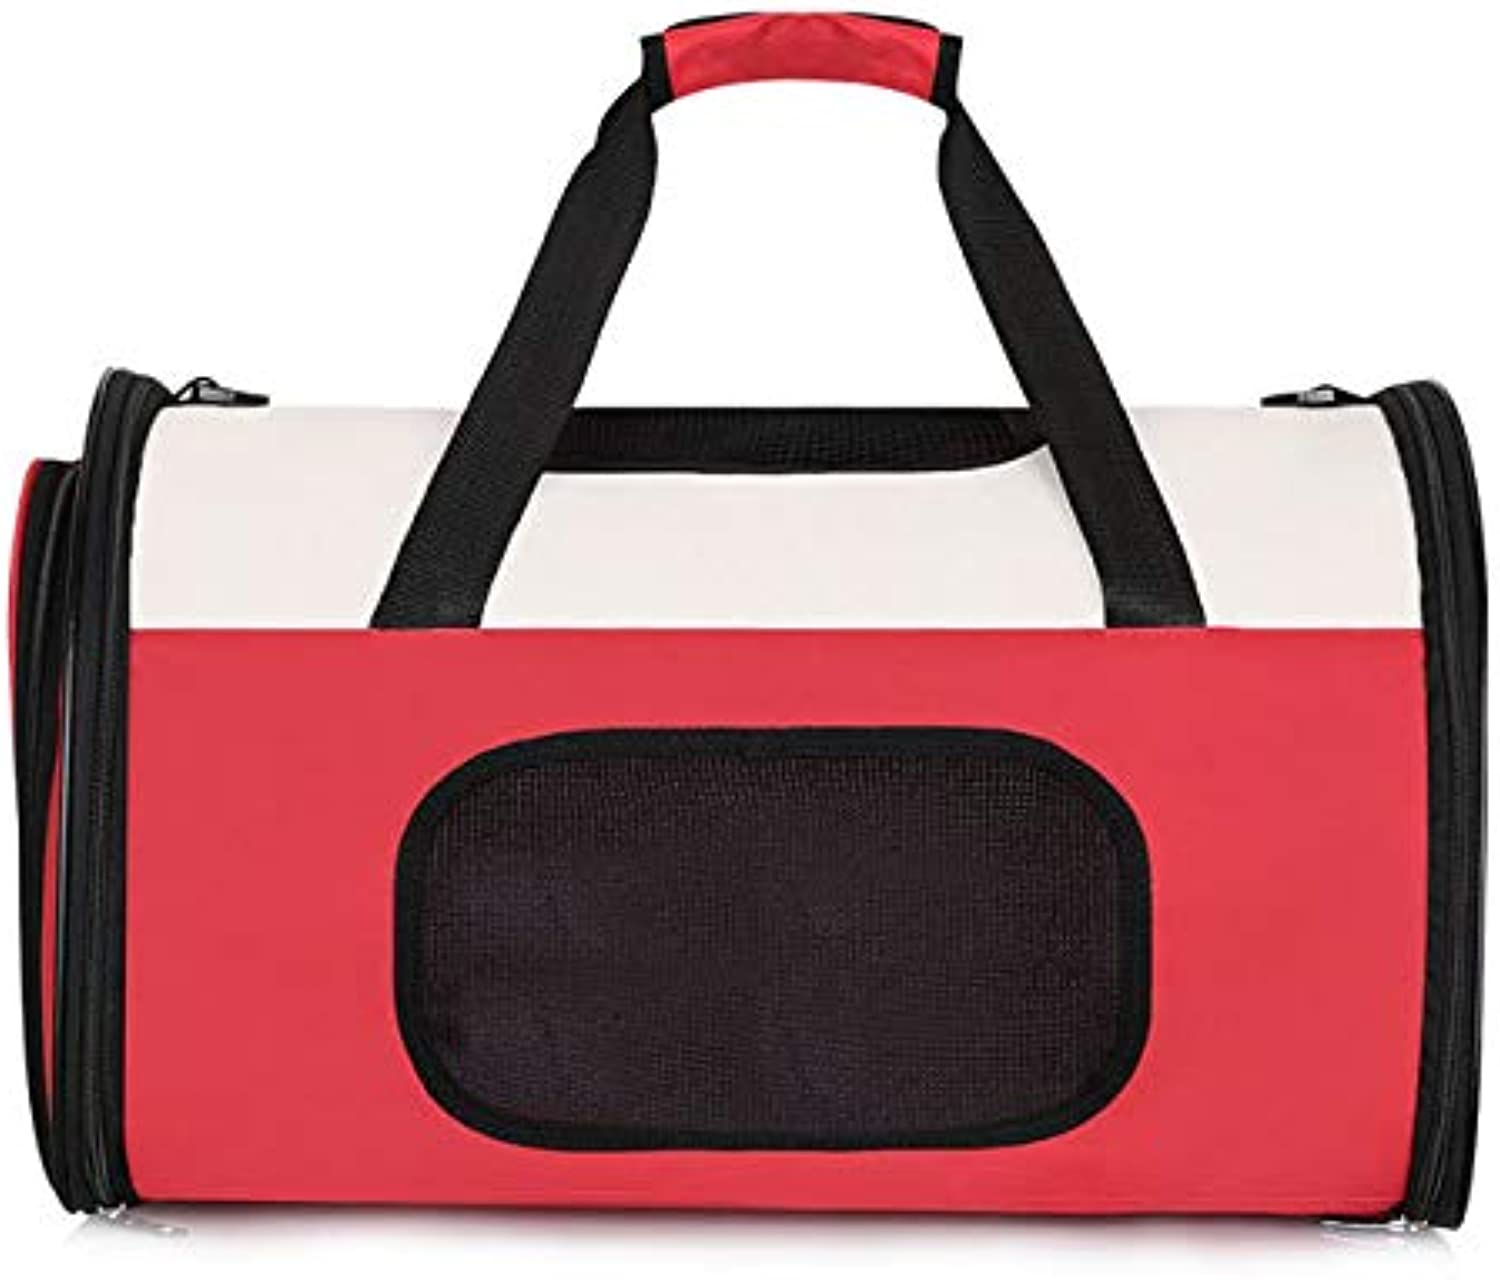 Pet Backpack Airline Approved Pet Carriers,Soft Sided Collapsible Pet Travel Carrier for Medium Puppy and Cats